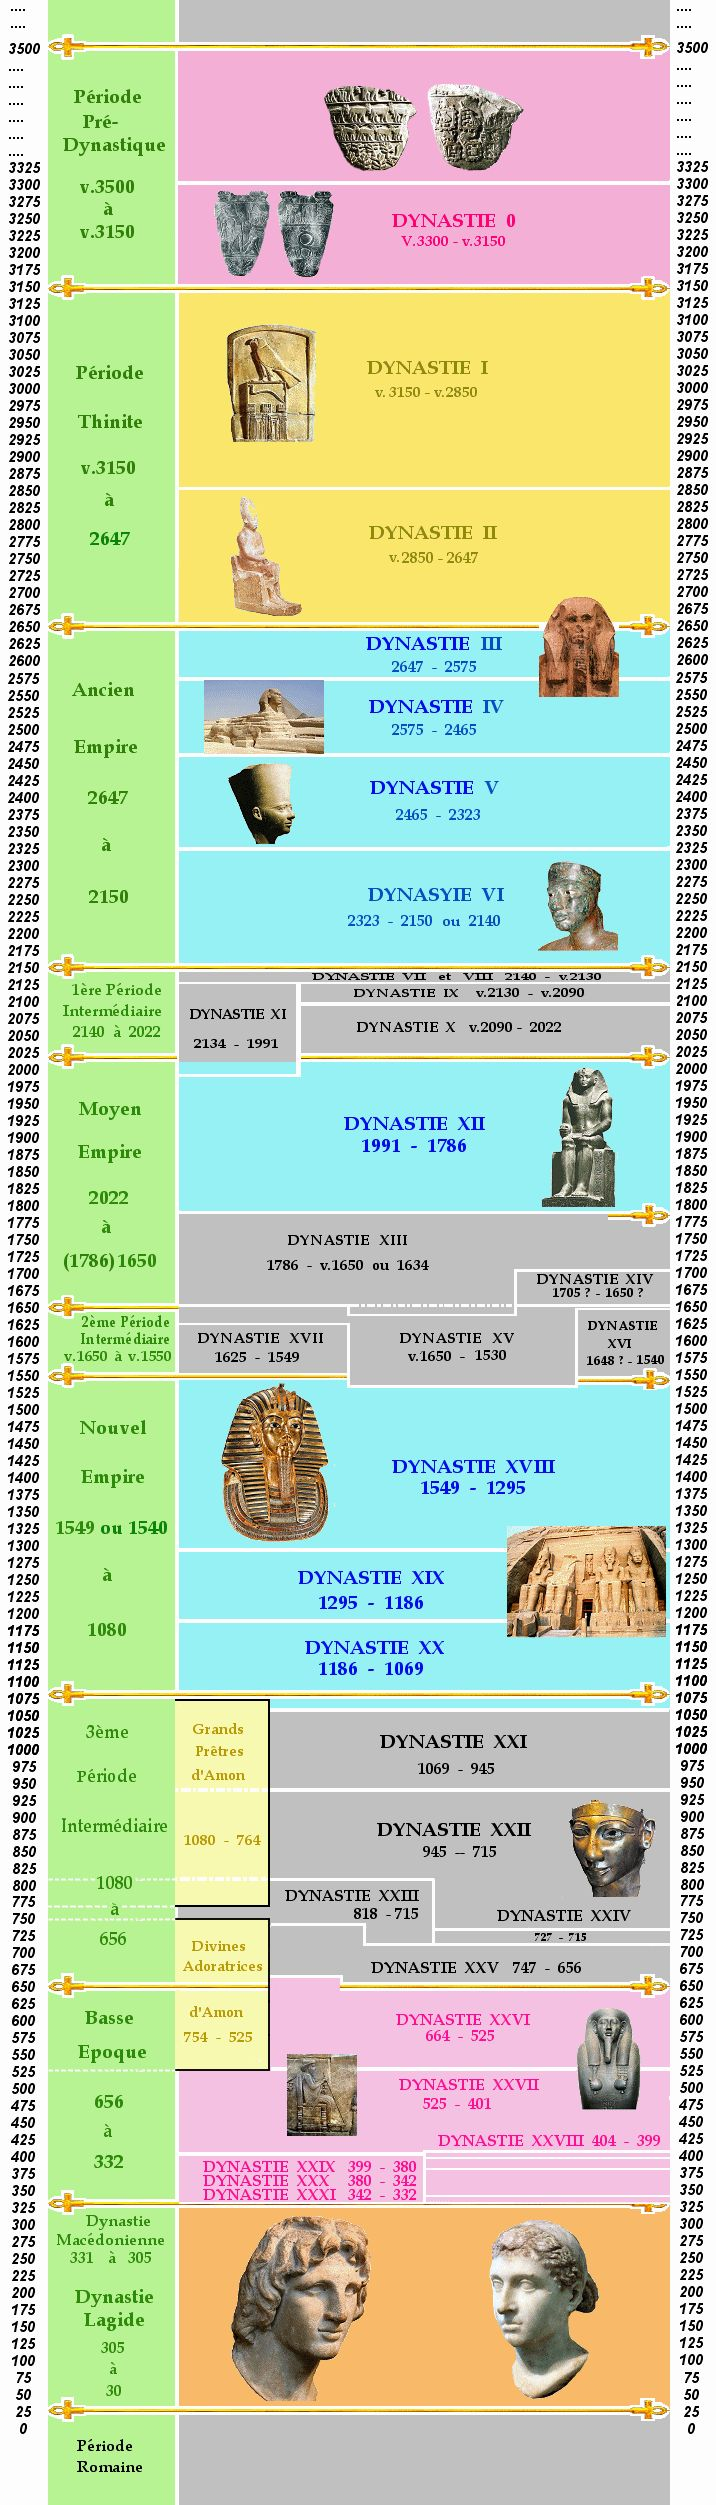 25th Dynasty should begin about 820 BCE with the Service of Nesi (Pharaoh) Khasta. The 26th Dynasty forward should be classified as the 4th Intermediate Period because these proxy kings were in the service of various invading barbarians: Assyrians, Persians, Greeks ect.  Chronologie de l'histoire de l'Egypte antique